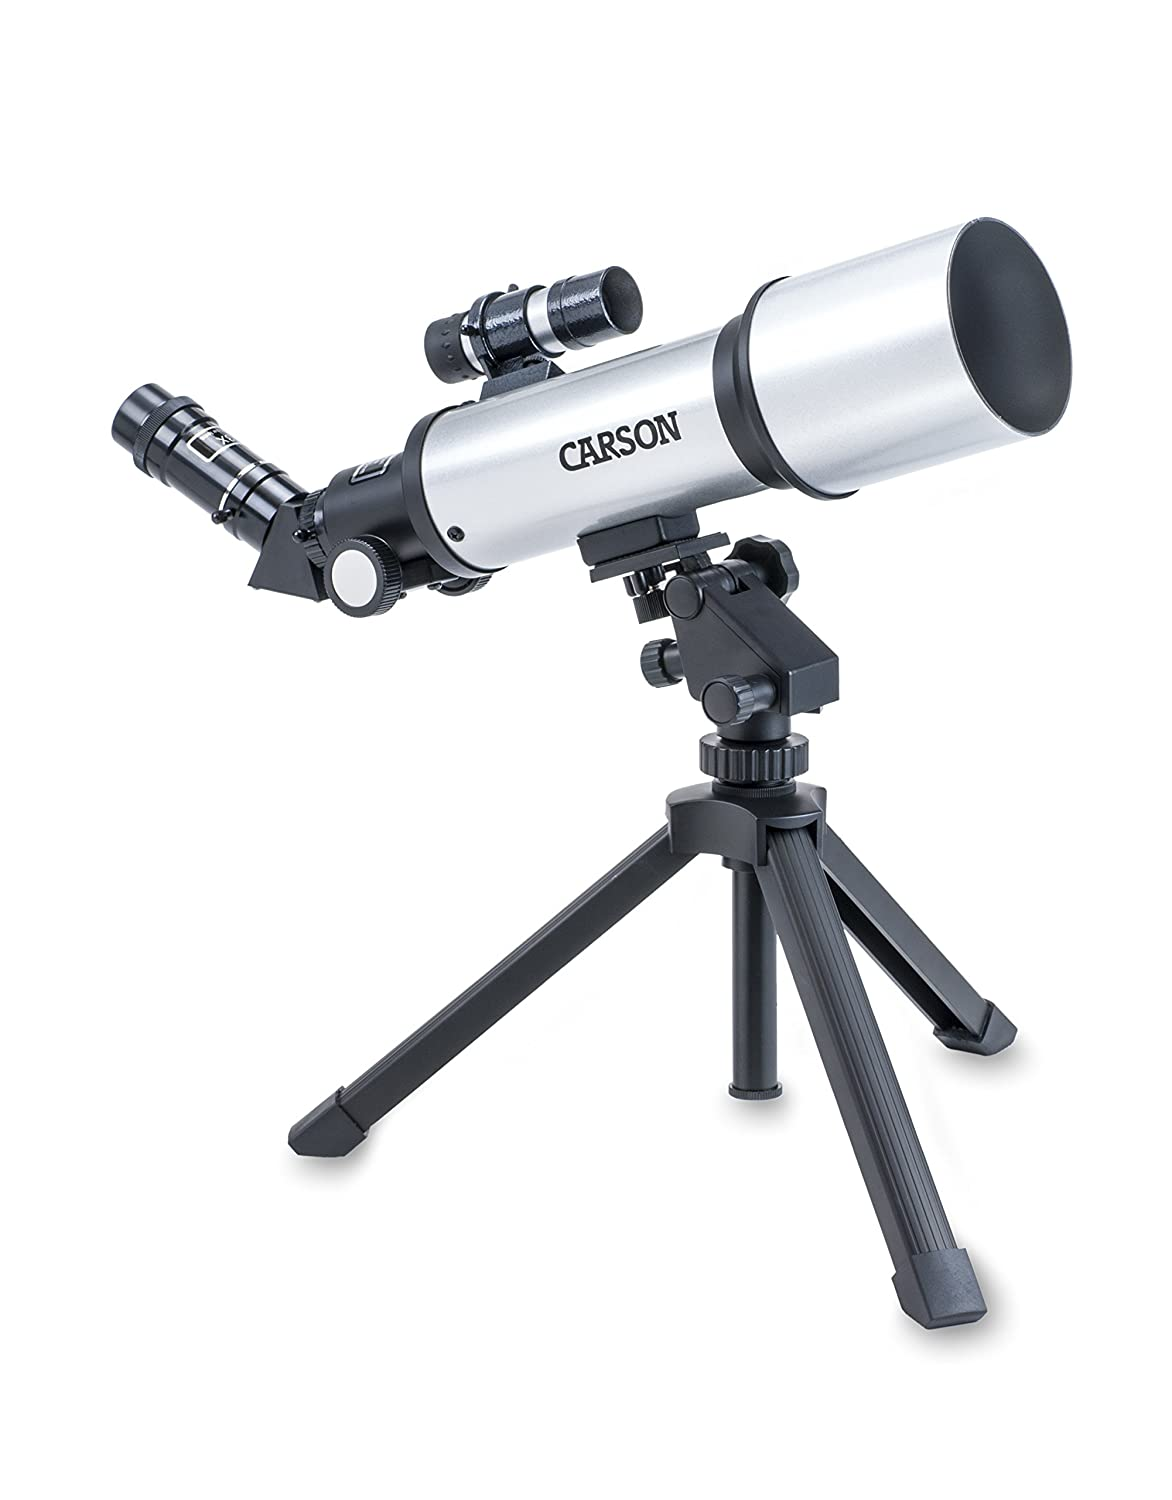 Carson Sky Chaser 70mm Refractor Beginner Telescope with Tabletop Tripod for Kids and Adults with Magnification up to 133.5X for Astronomy and Terrestrial Viewing (SC-450)